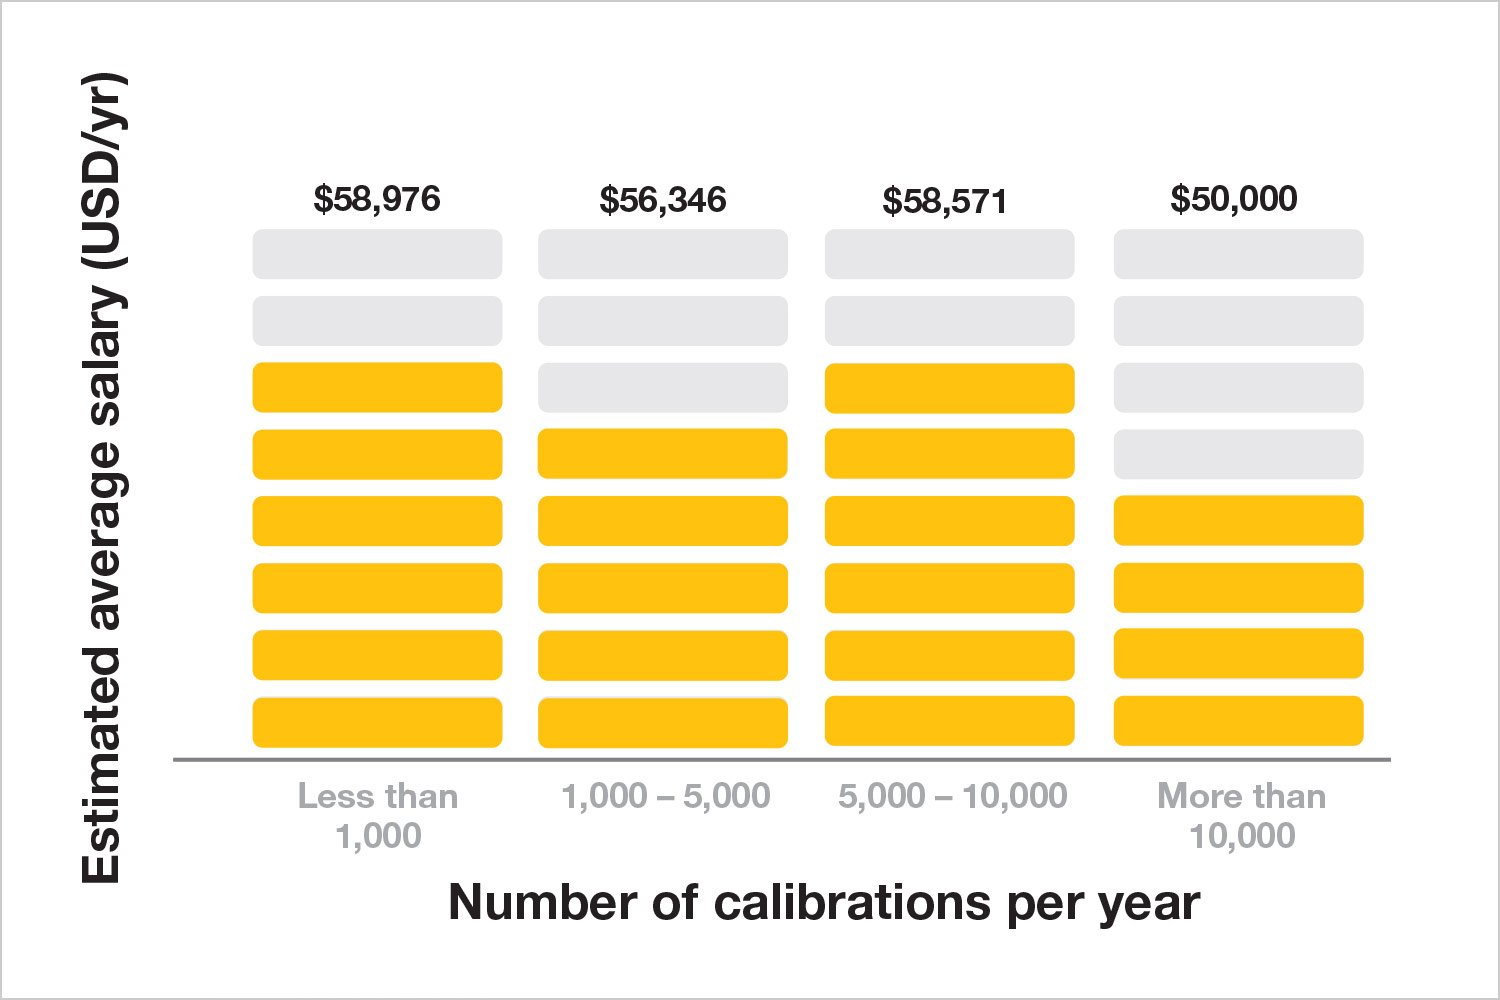 Number of calibrations per year chart